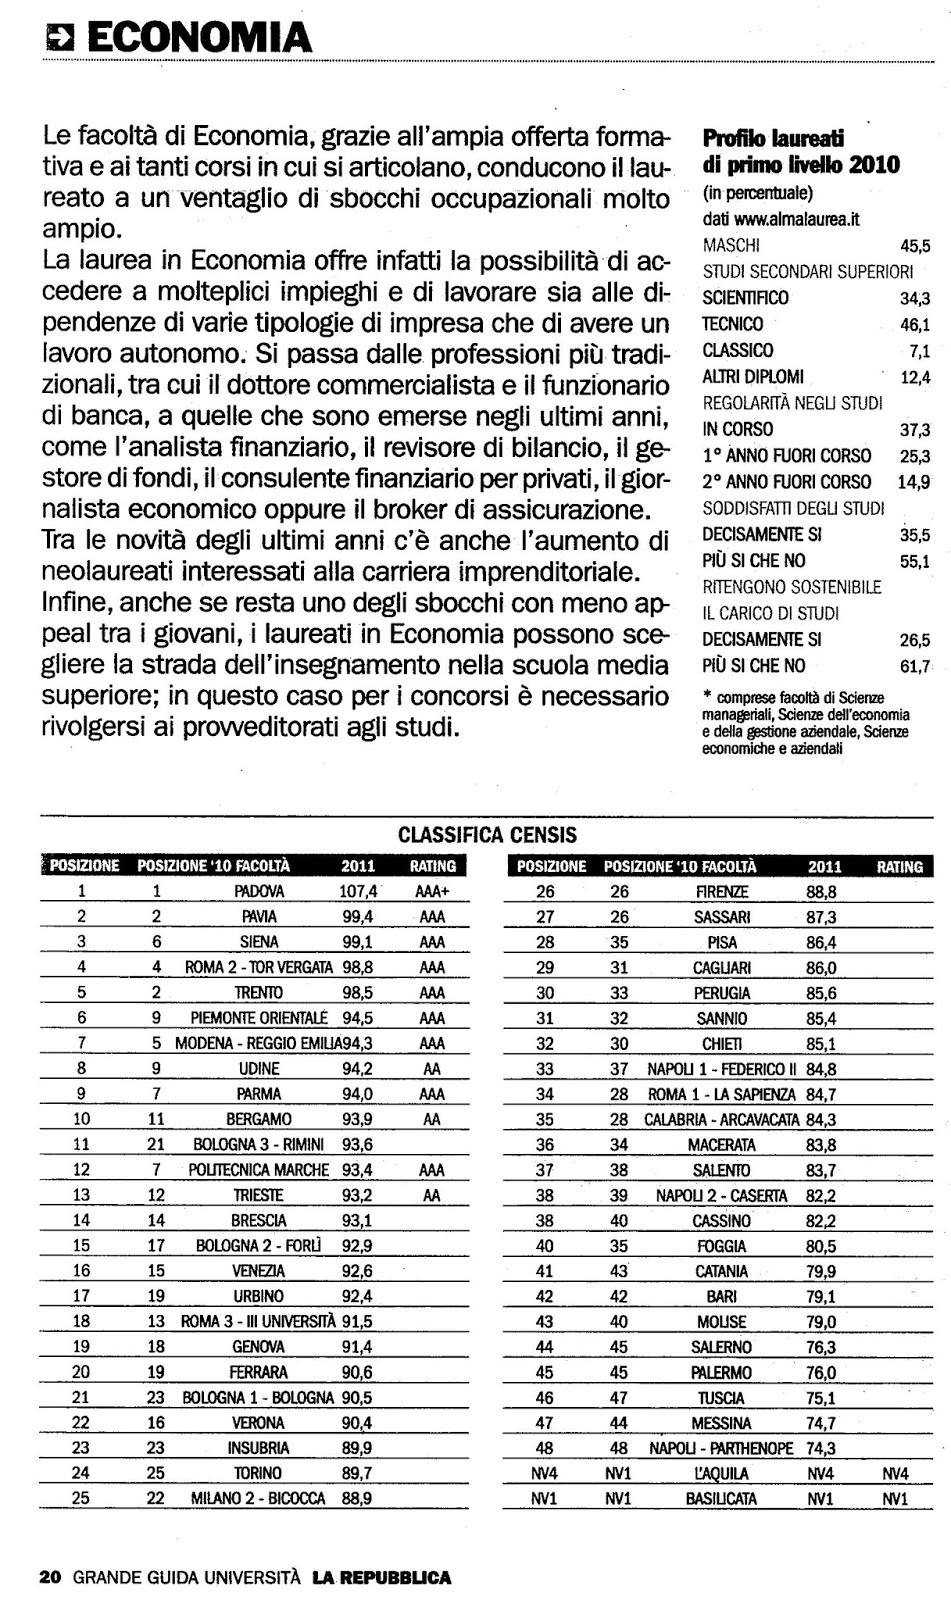 Classifica Università di Economia in Italia